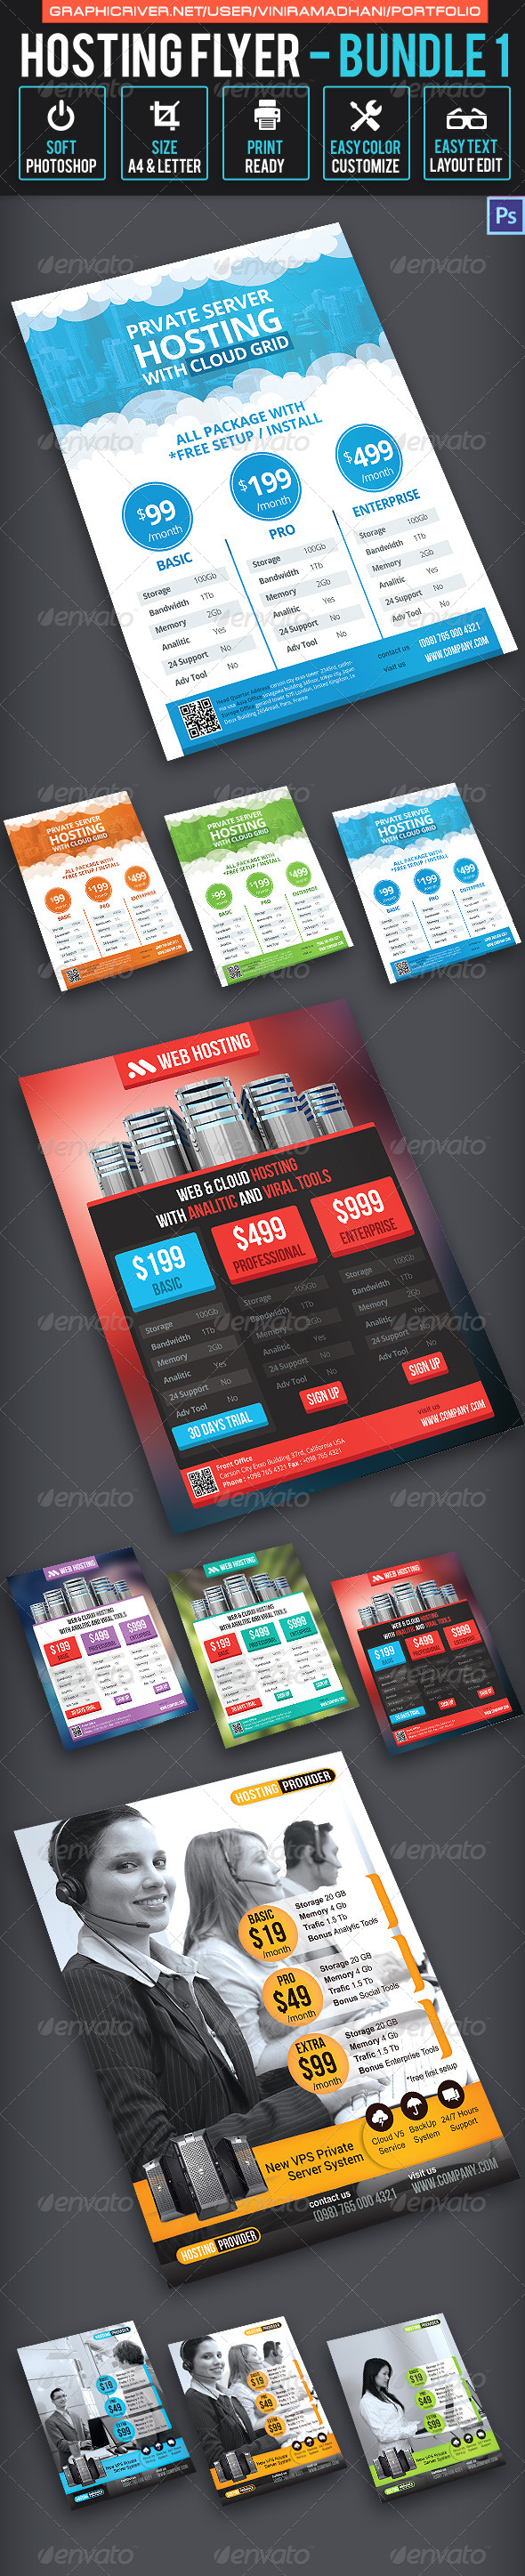 Hosting Flyer Bundle 1 - Corporate Flyers